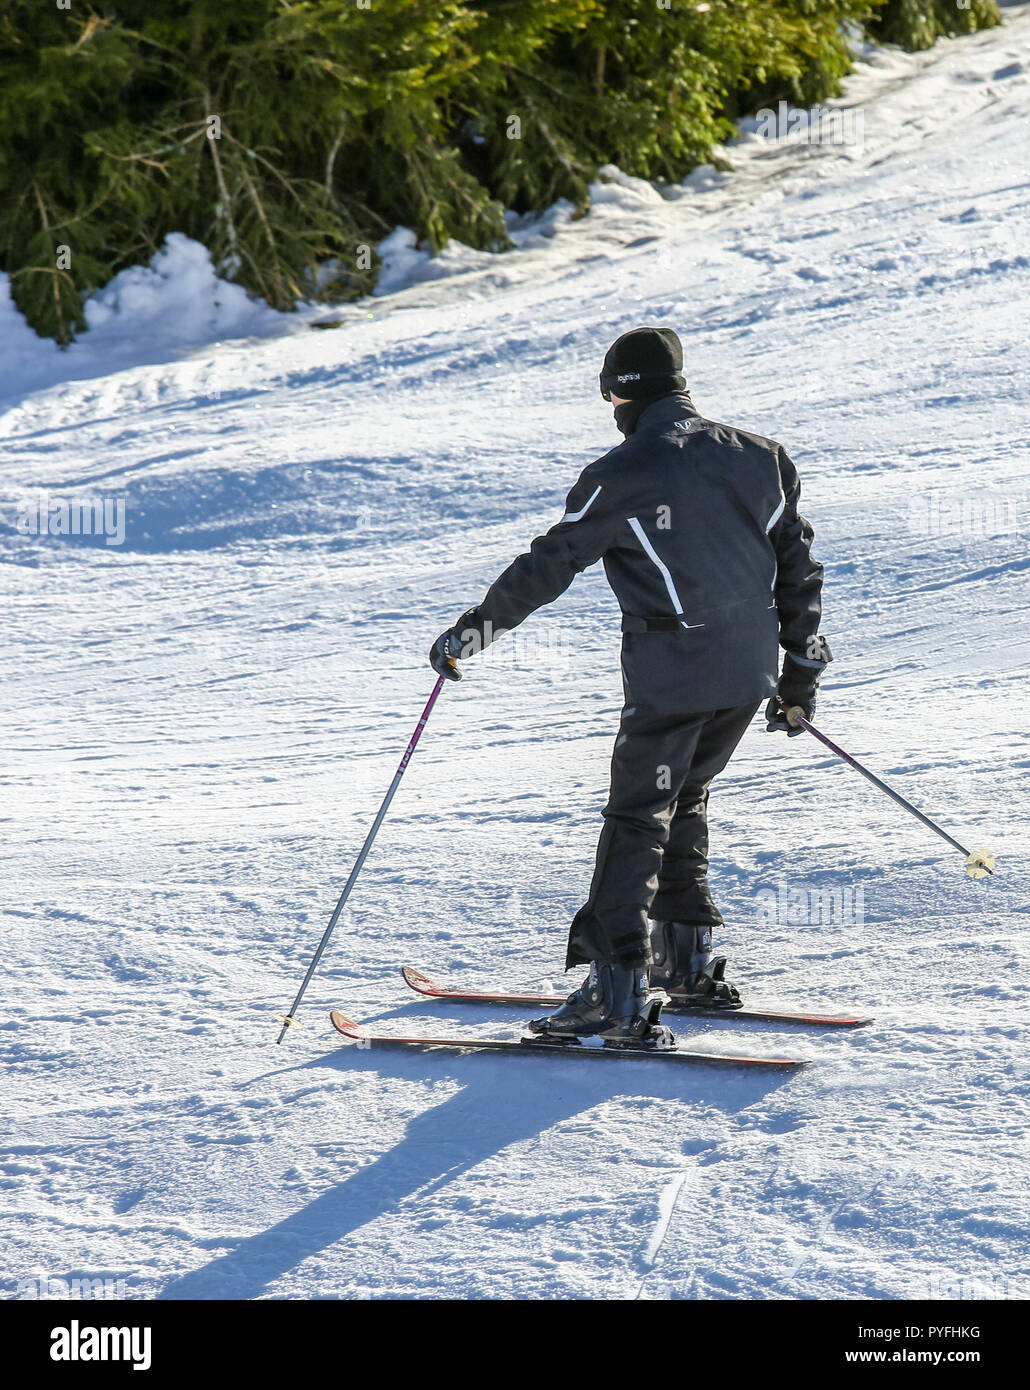 GERARDMER, FRANCE - FEB 17- Closeup on beginner skier during the annual winter school holiday on Feb 17, 2015 in Gerardmer, France - Stock Image